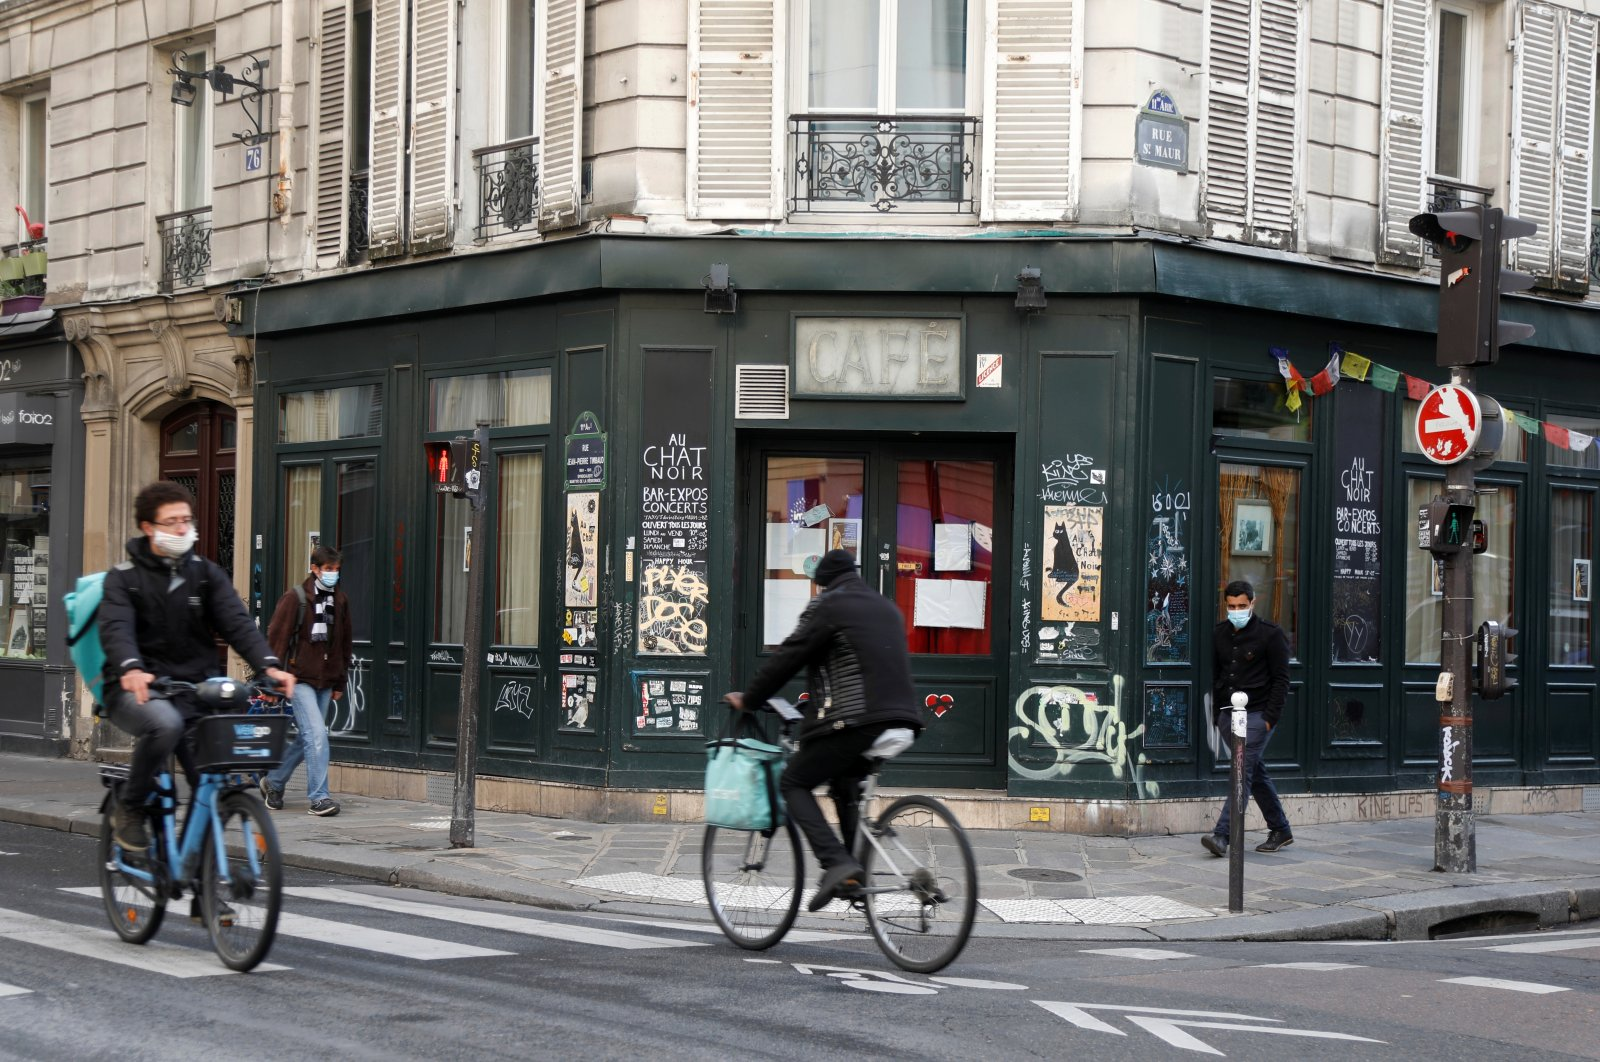 Cyclists ride past a bar closed as part of stricter restrictions, Paris, France, Oct. 13, 2020.  (Reuters Photo)